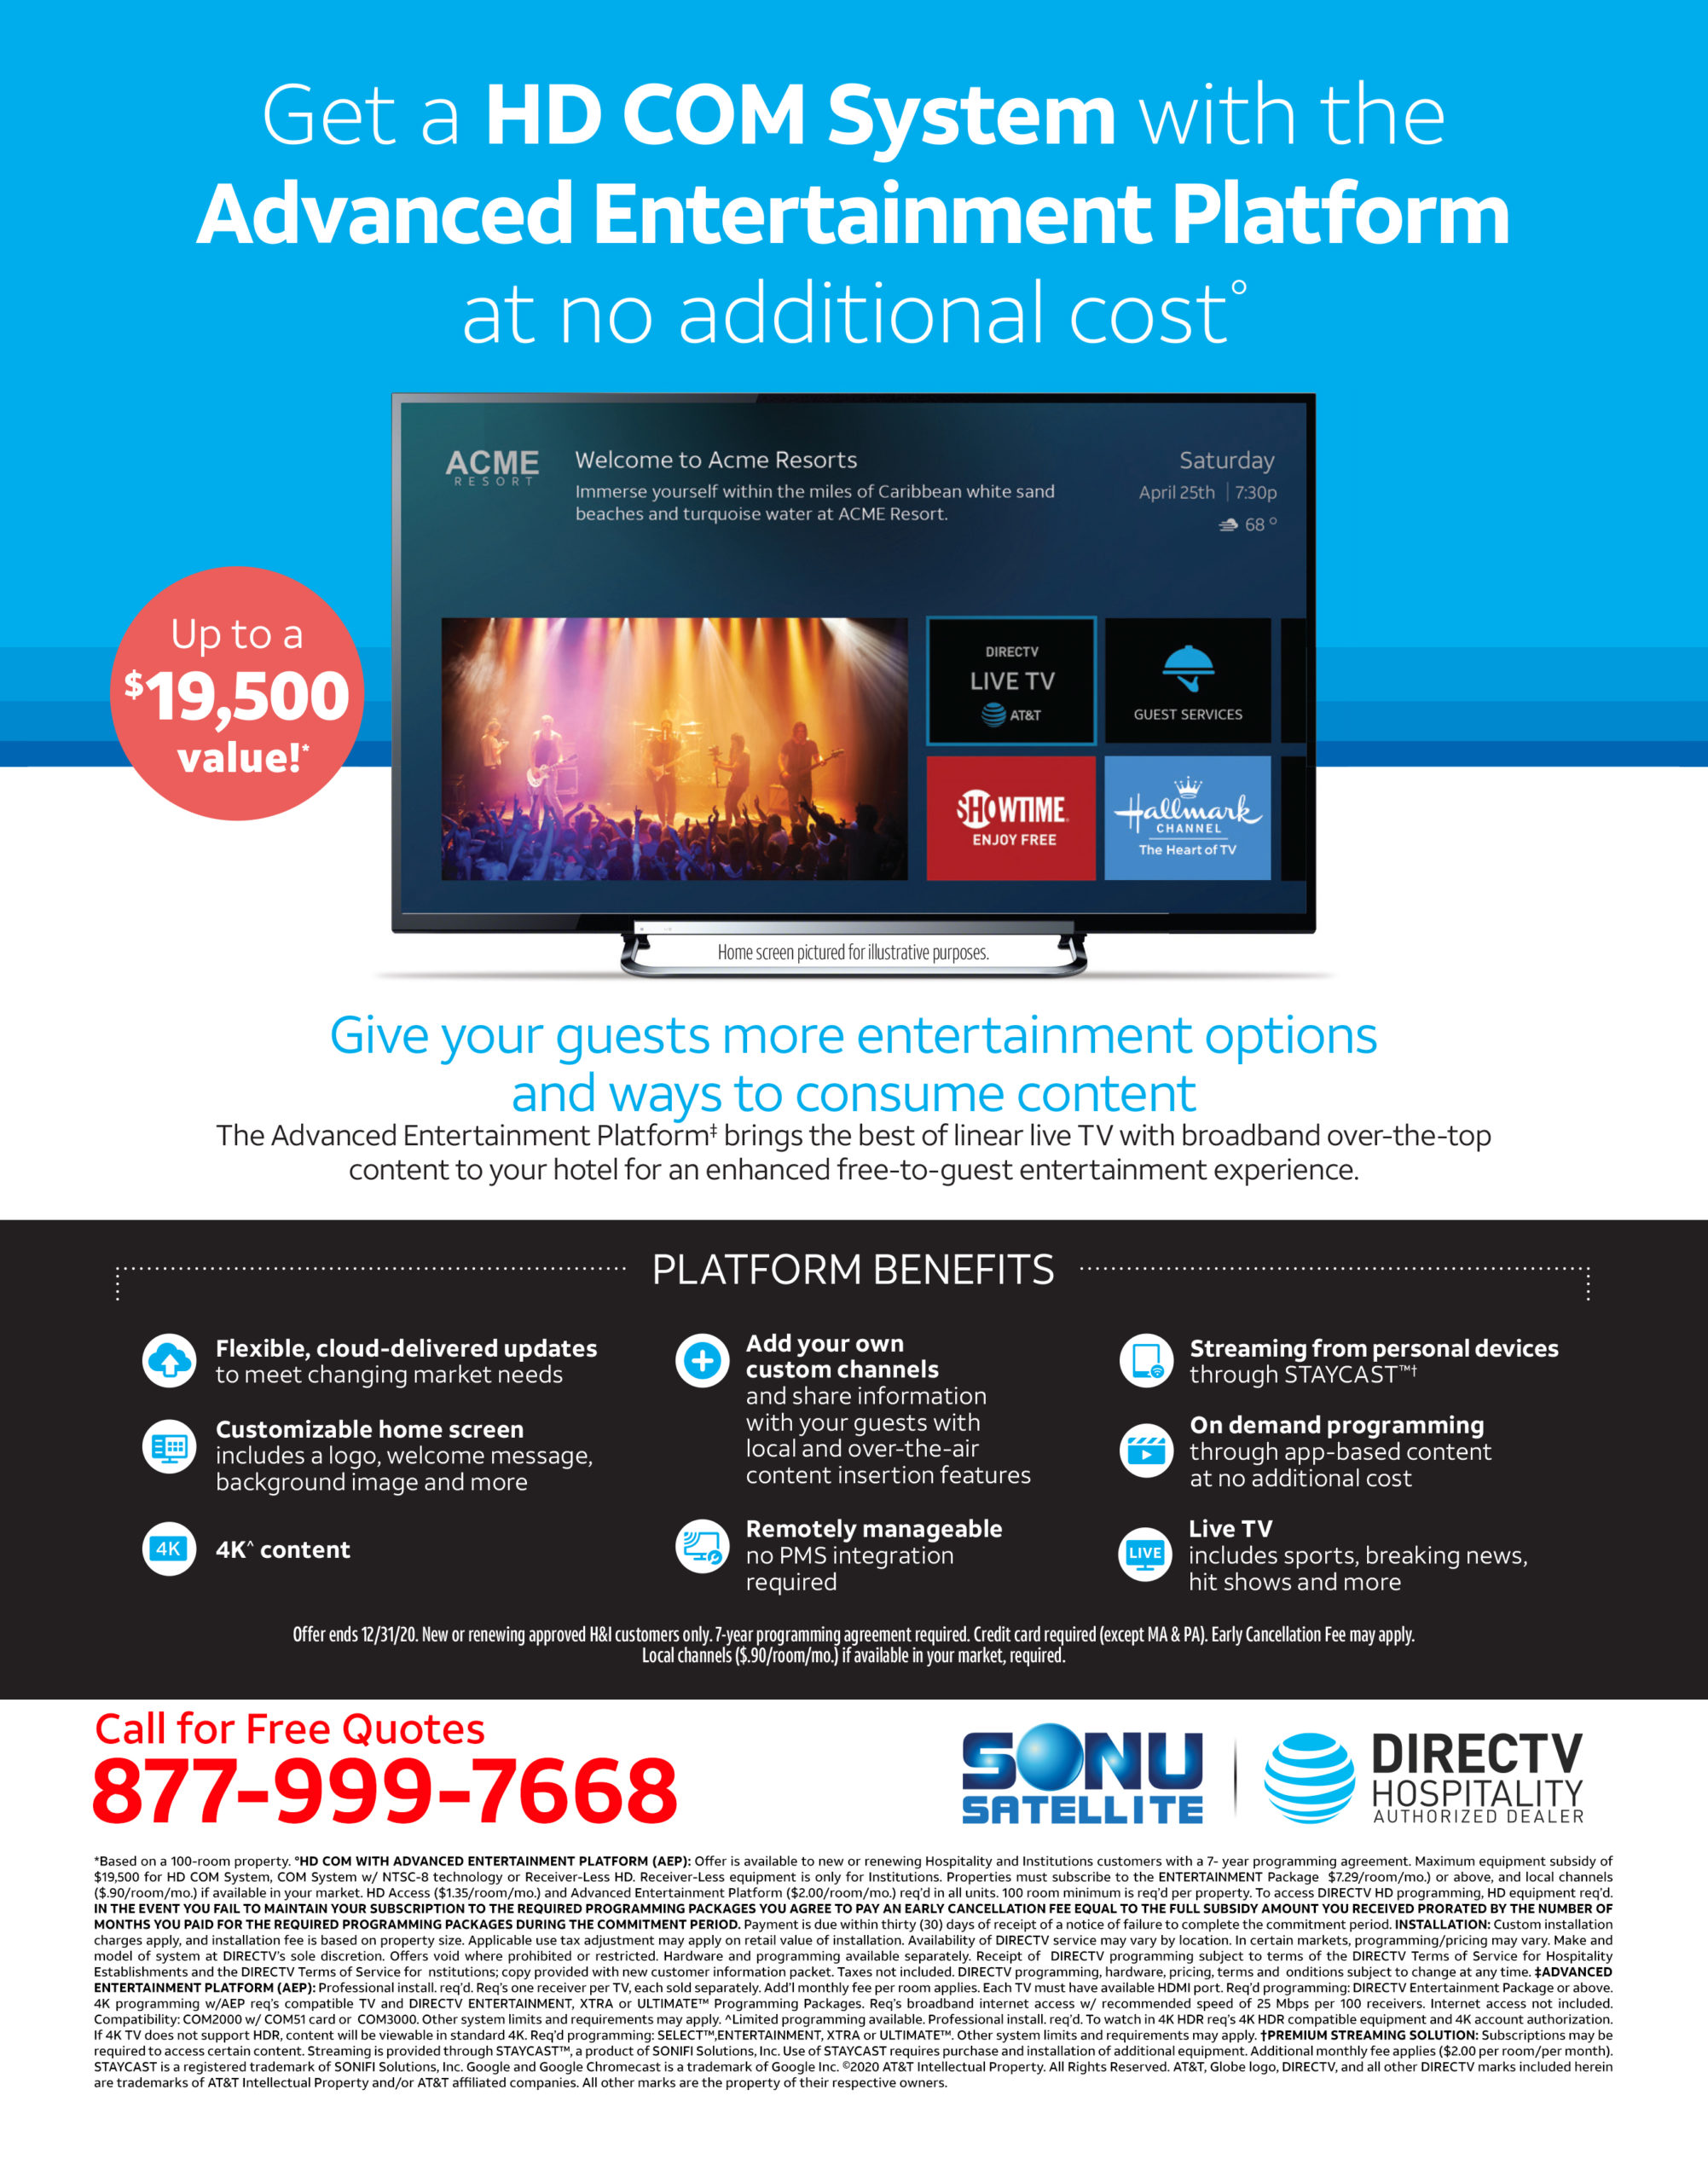 DIRECTV for Hotels 2020 Free Equipment Promotion